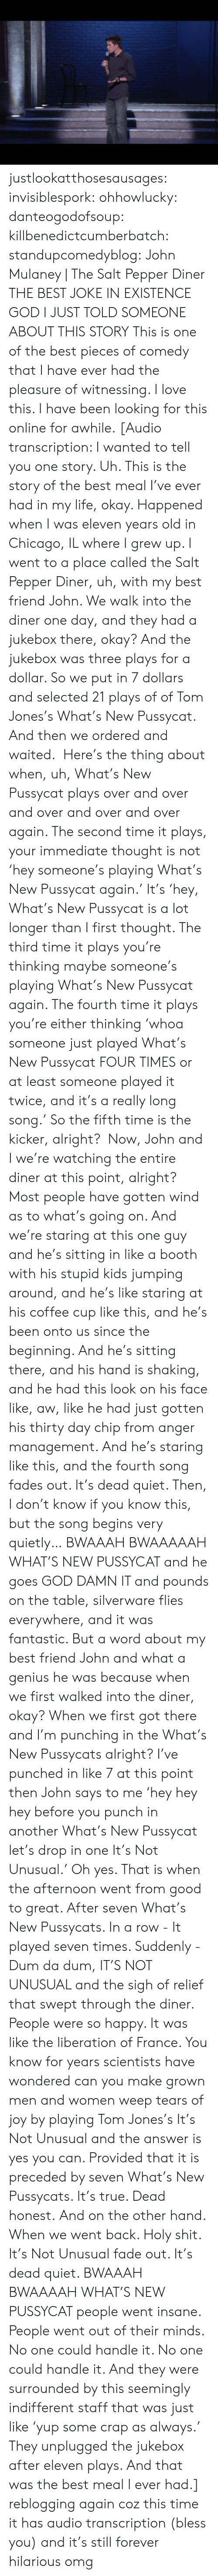 chicago il: justlookatthosesausages: invisiblespork:  ohhowlucky:  danteogodofsoup:  killbenedictcumberbatch:  standupcomedyblog:  John Mulaney | The Salt  Pepper Diner  THE BEST JOKE IN EXISTENCE  GOD I JUST TOLD SOMEONE ABOUT THIS STORY  This is one of the best pieces of comedy that I have ever had the pleasure of witnessing. I love this. I have been looking for this online for awhile.  [Audio transcription: I wanted to tell you one story. Uh. This is the story of the best meal I've ever had in my life, okay. Happened when I was eleven years old in Chicago, IL where I grew up. I went to a place called the Salt  Pepper Diner, uh, with my best friend John. We walk into the diner one day, and they had a jukebox there, okay? And the jukebox was three plays for a dollar. So we put in 7 dollars and selected 21 plays of of Tom Jones's What's New Pussycat. And then we ordered and waited. Here's the thing about when, uh, What's New Pussycat plays over and over and over and over and over again. The second time it plays, your immediate thought is not 'hey someone's playing What's New Pussycat again.' It's 'hey, What's New Pussycat is a lot longer than I first thought. The third time it plays you're thinking maybe someone's playing What's New Pussycat again. The fourth time it plays you're either thinking 'whoa someone just played What's New Pussycat FOUR TIMES or at least someone played it twice, and it's a really long song.' So the fifth time is the kicker, alright? Now, John and I we're watching the entire diner at this point, alright? Most people have gotten wind as to what's going on. And we're staring at this one guy and he's sitting in like a booth with his stupid kids jumping around, and he's like staring at his coffee cup like this, and he's been onto us since the beginning. And he's sitting there, and his hand is shaking, and he had this look on his face like, aw, like he had just gotten his thirty day chip from anger management. And he's staring like this, and the 